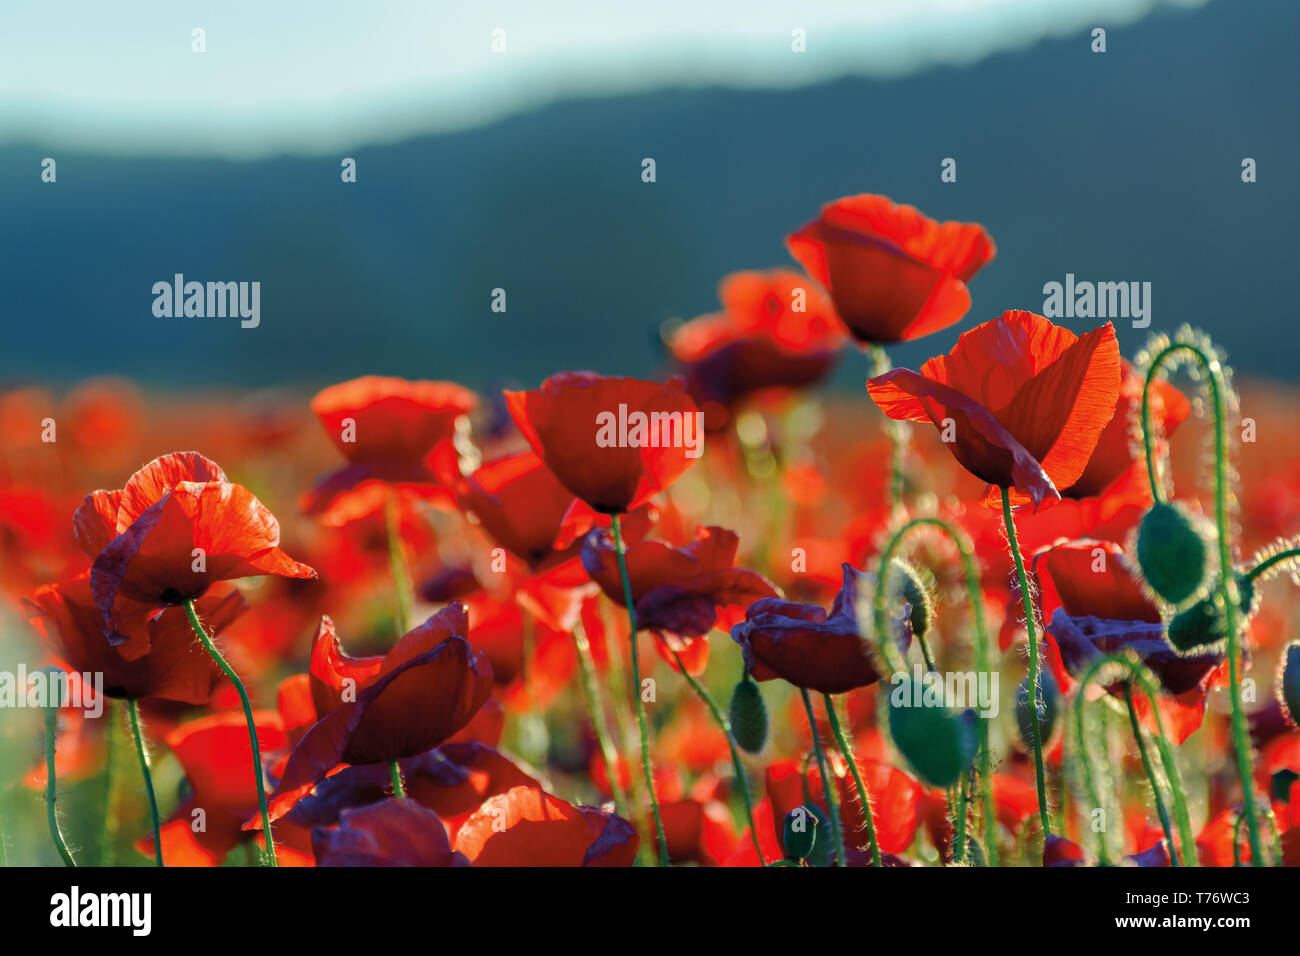 poppy flowers field bathing in the sunlight. beautiful summer background - Stock Image